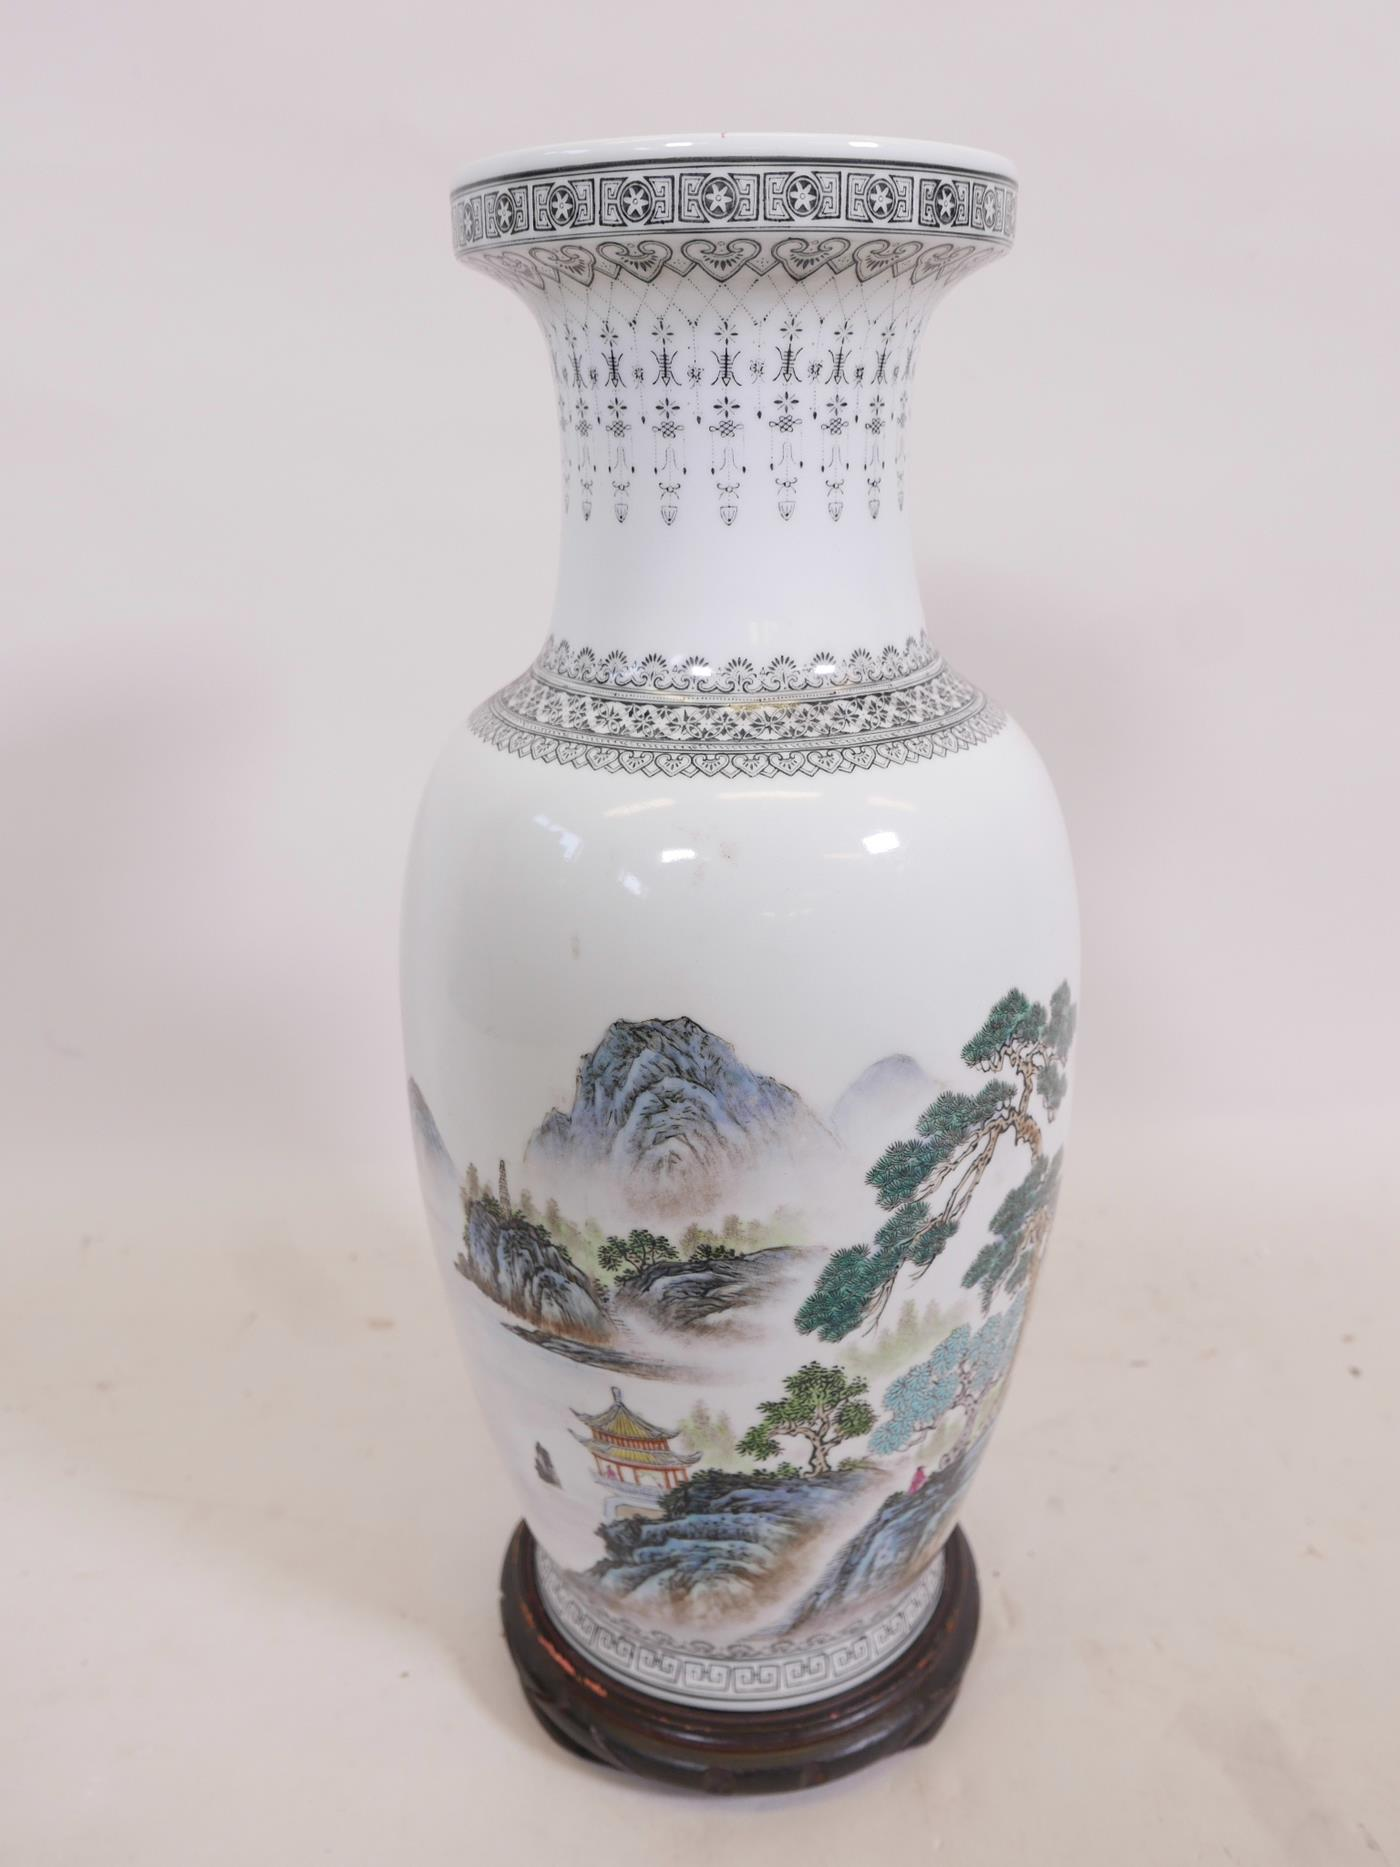 Lot 12 - A Chinese Republic porcelain vase decorated with figures in a forest and lake landscape, calligraphy